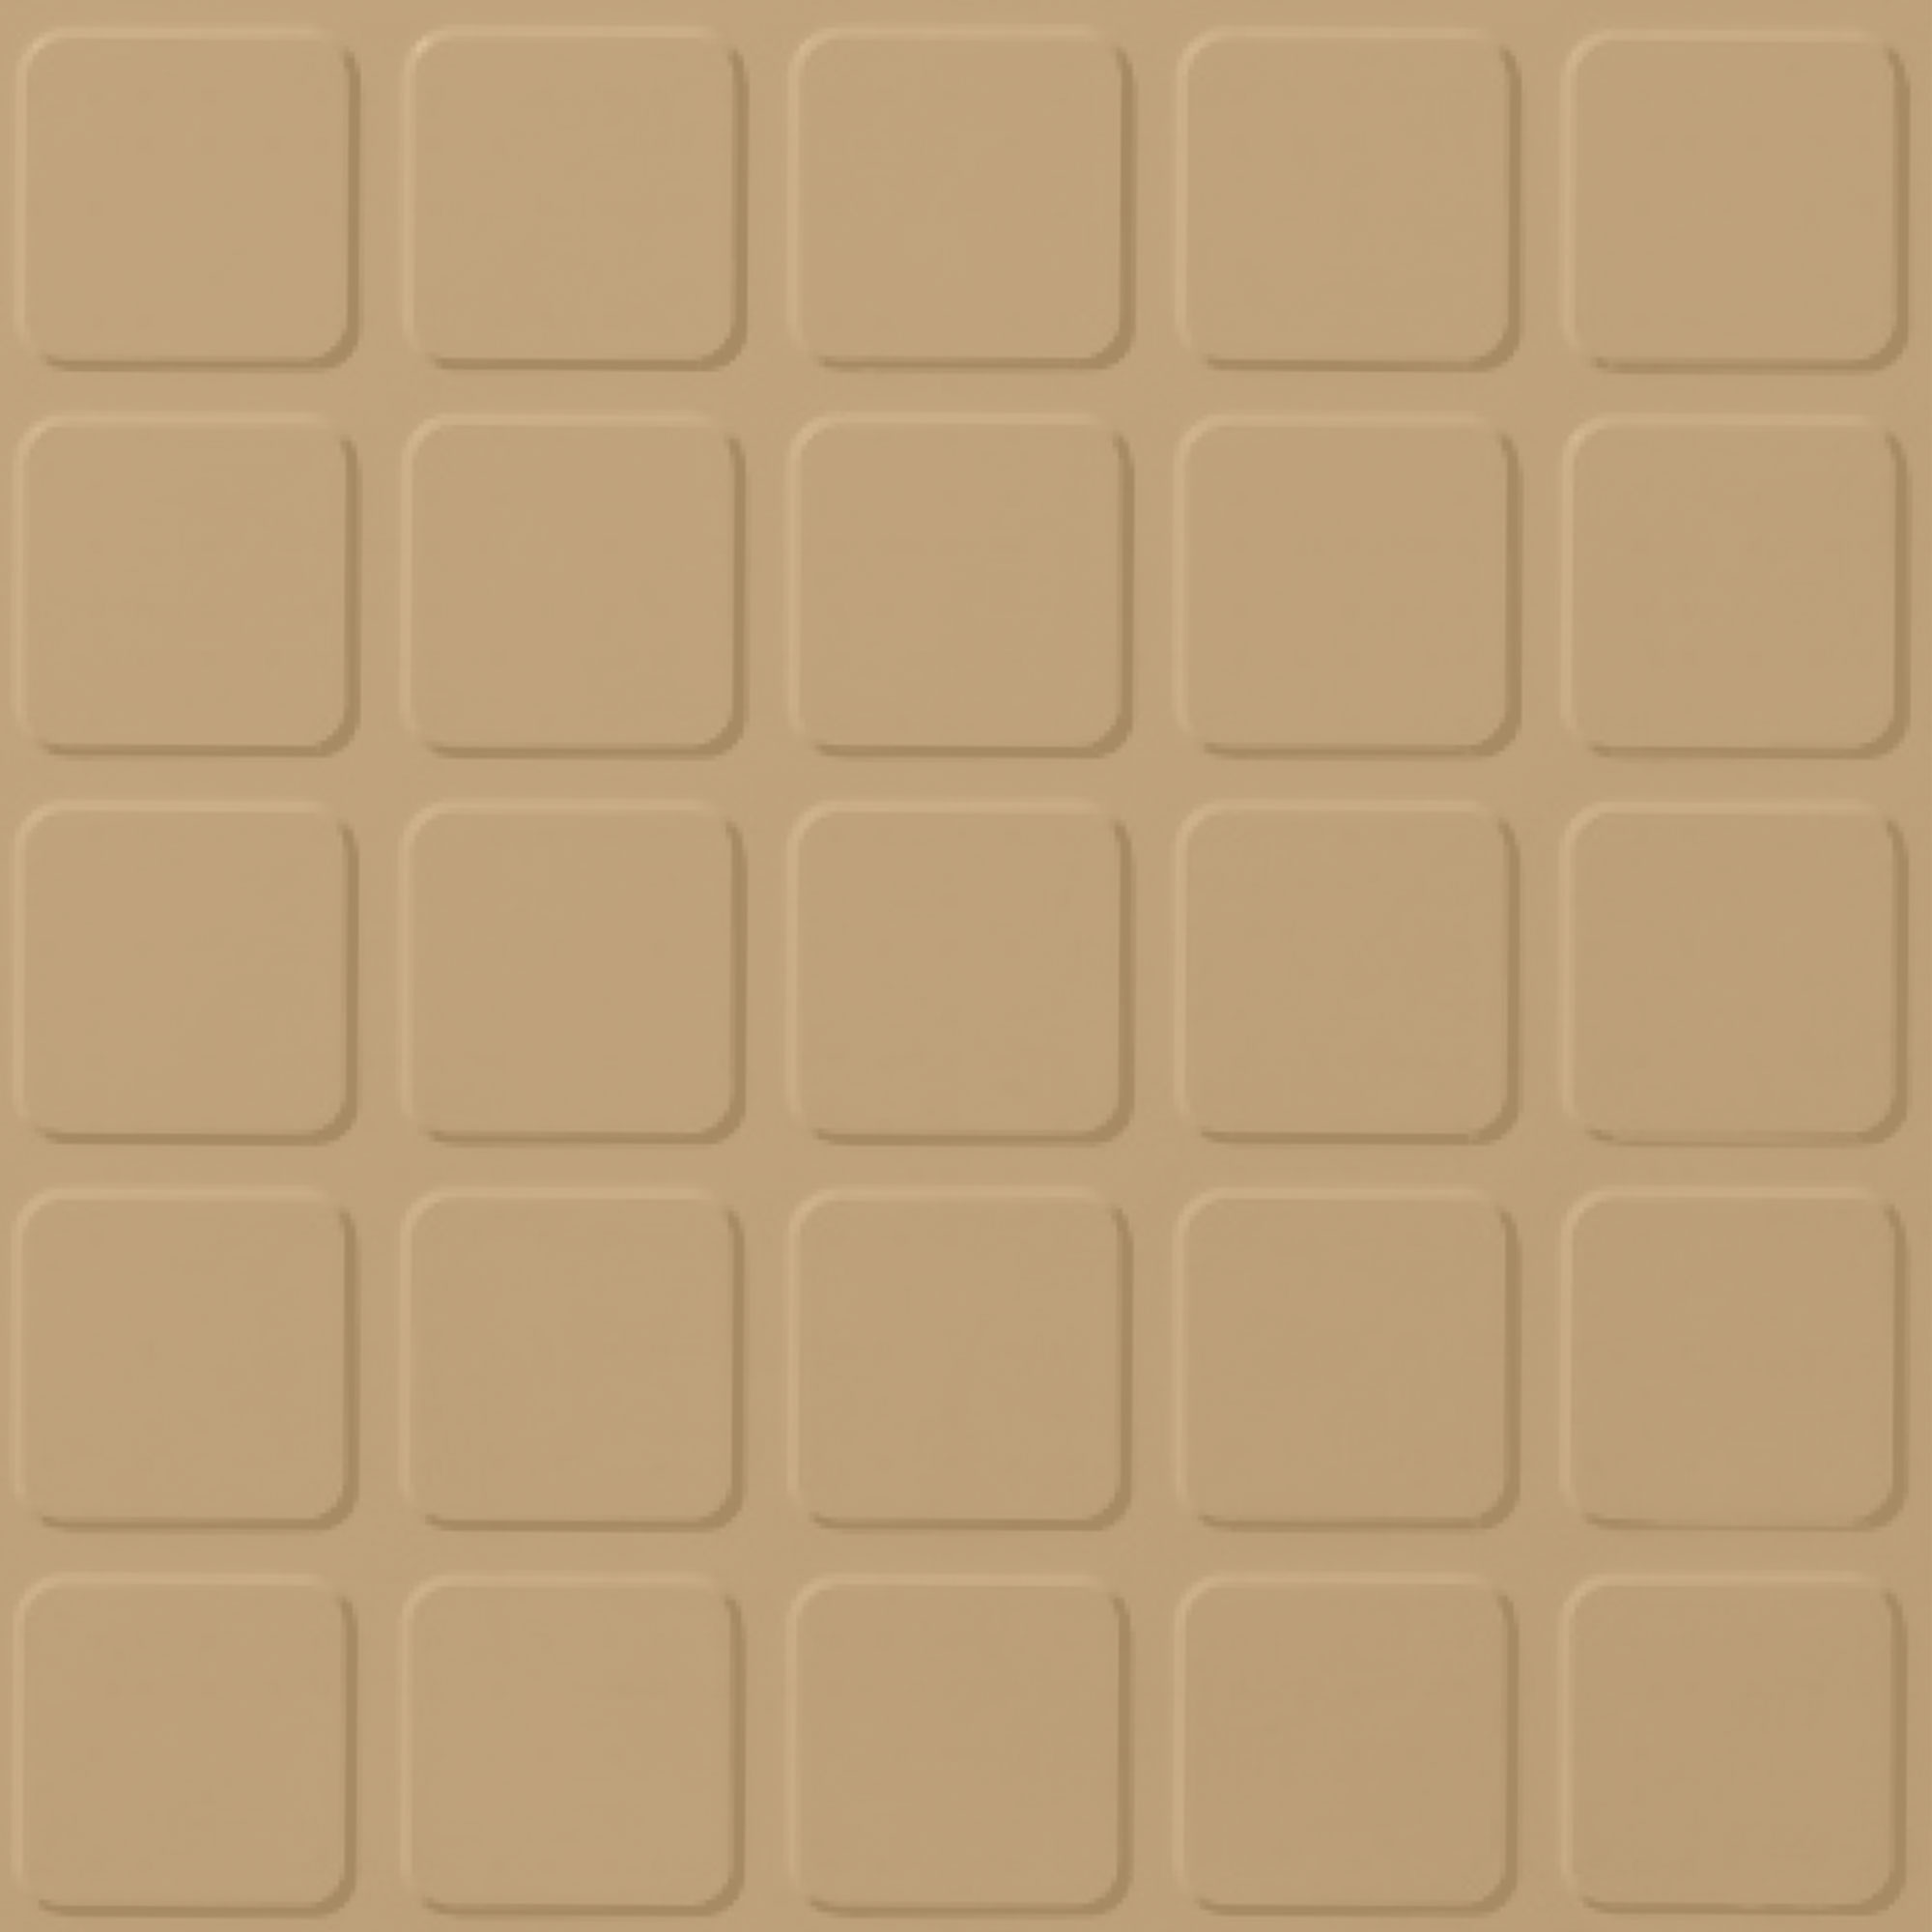 Roppe Rubber Design Treads - Raised Square Design Harvest Yellow 127